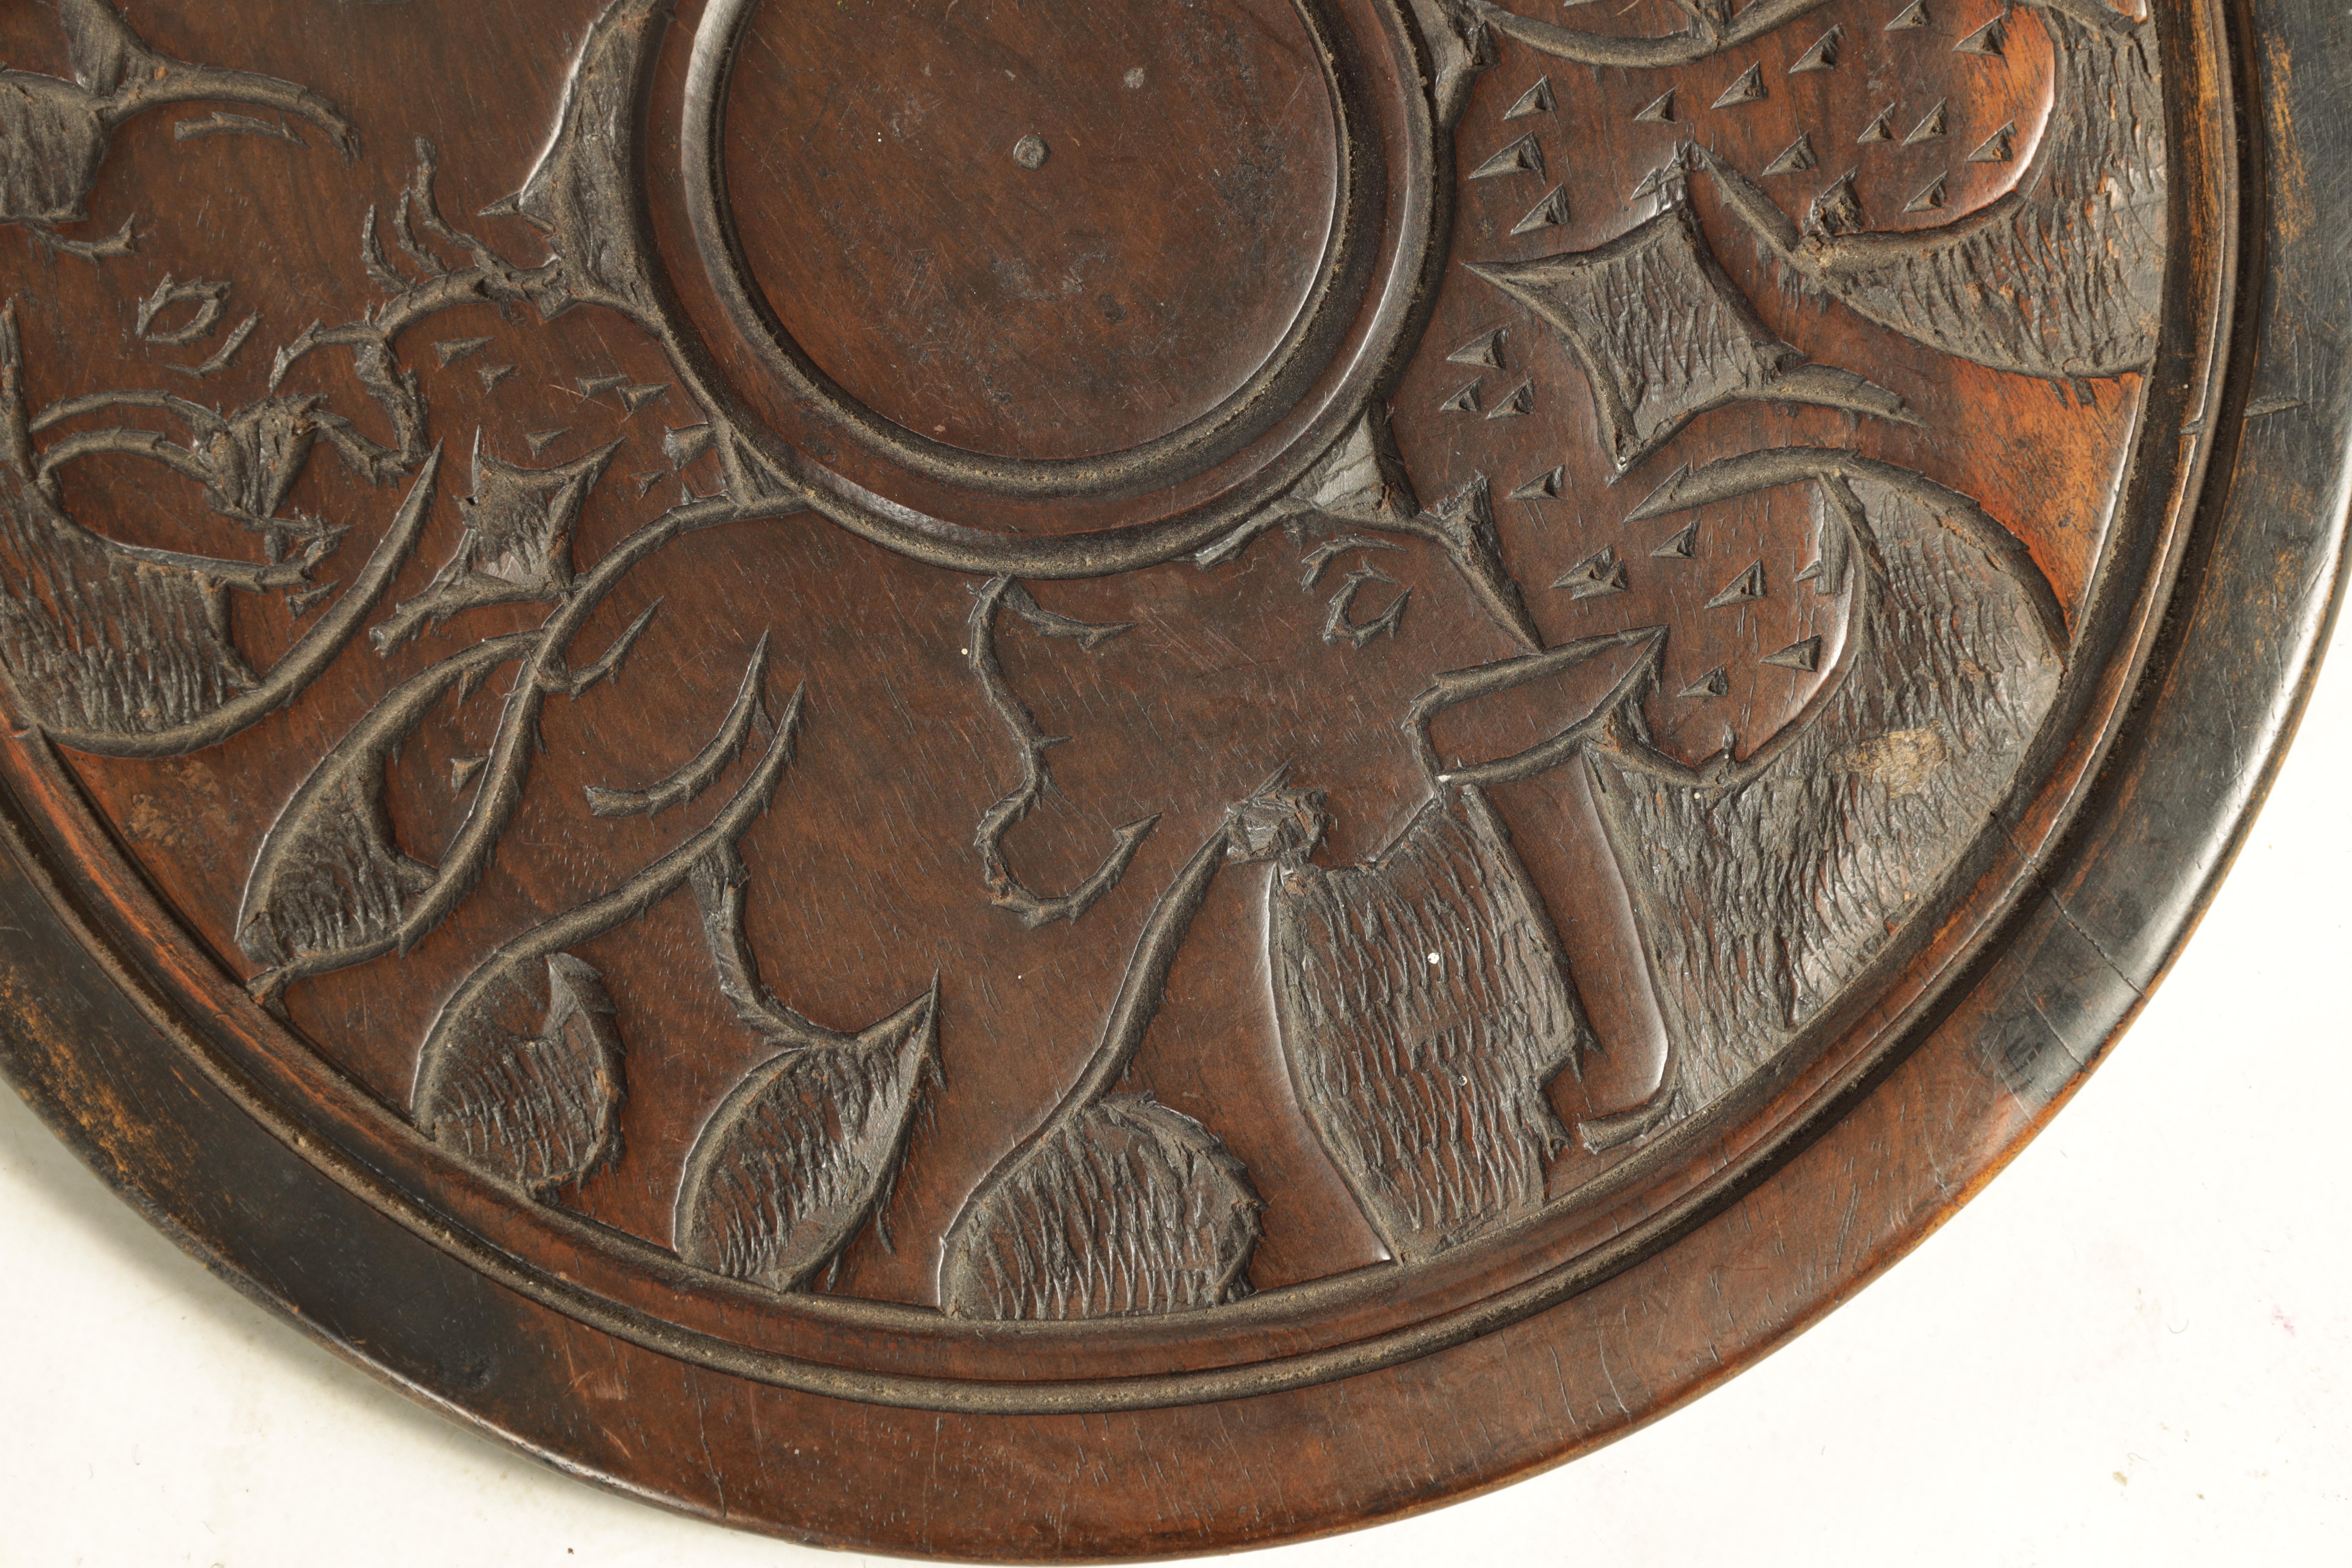 A LATE 19TH CENTURY AFRICAN HARDWOOD FOLDING TABLE the circular top relief carved with Rhinosorus - Image 7 of 7